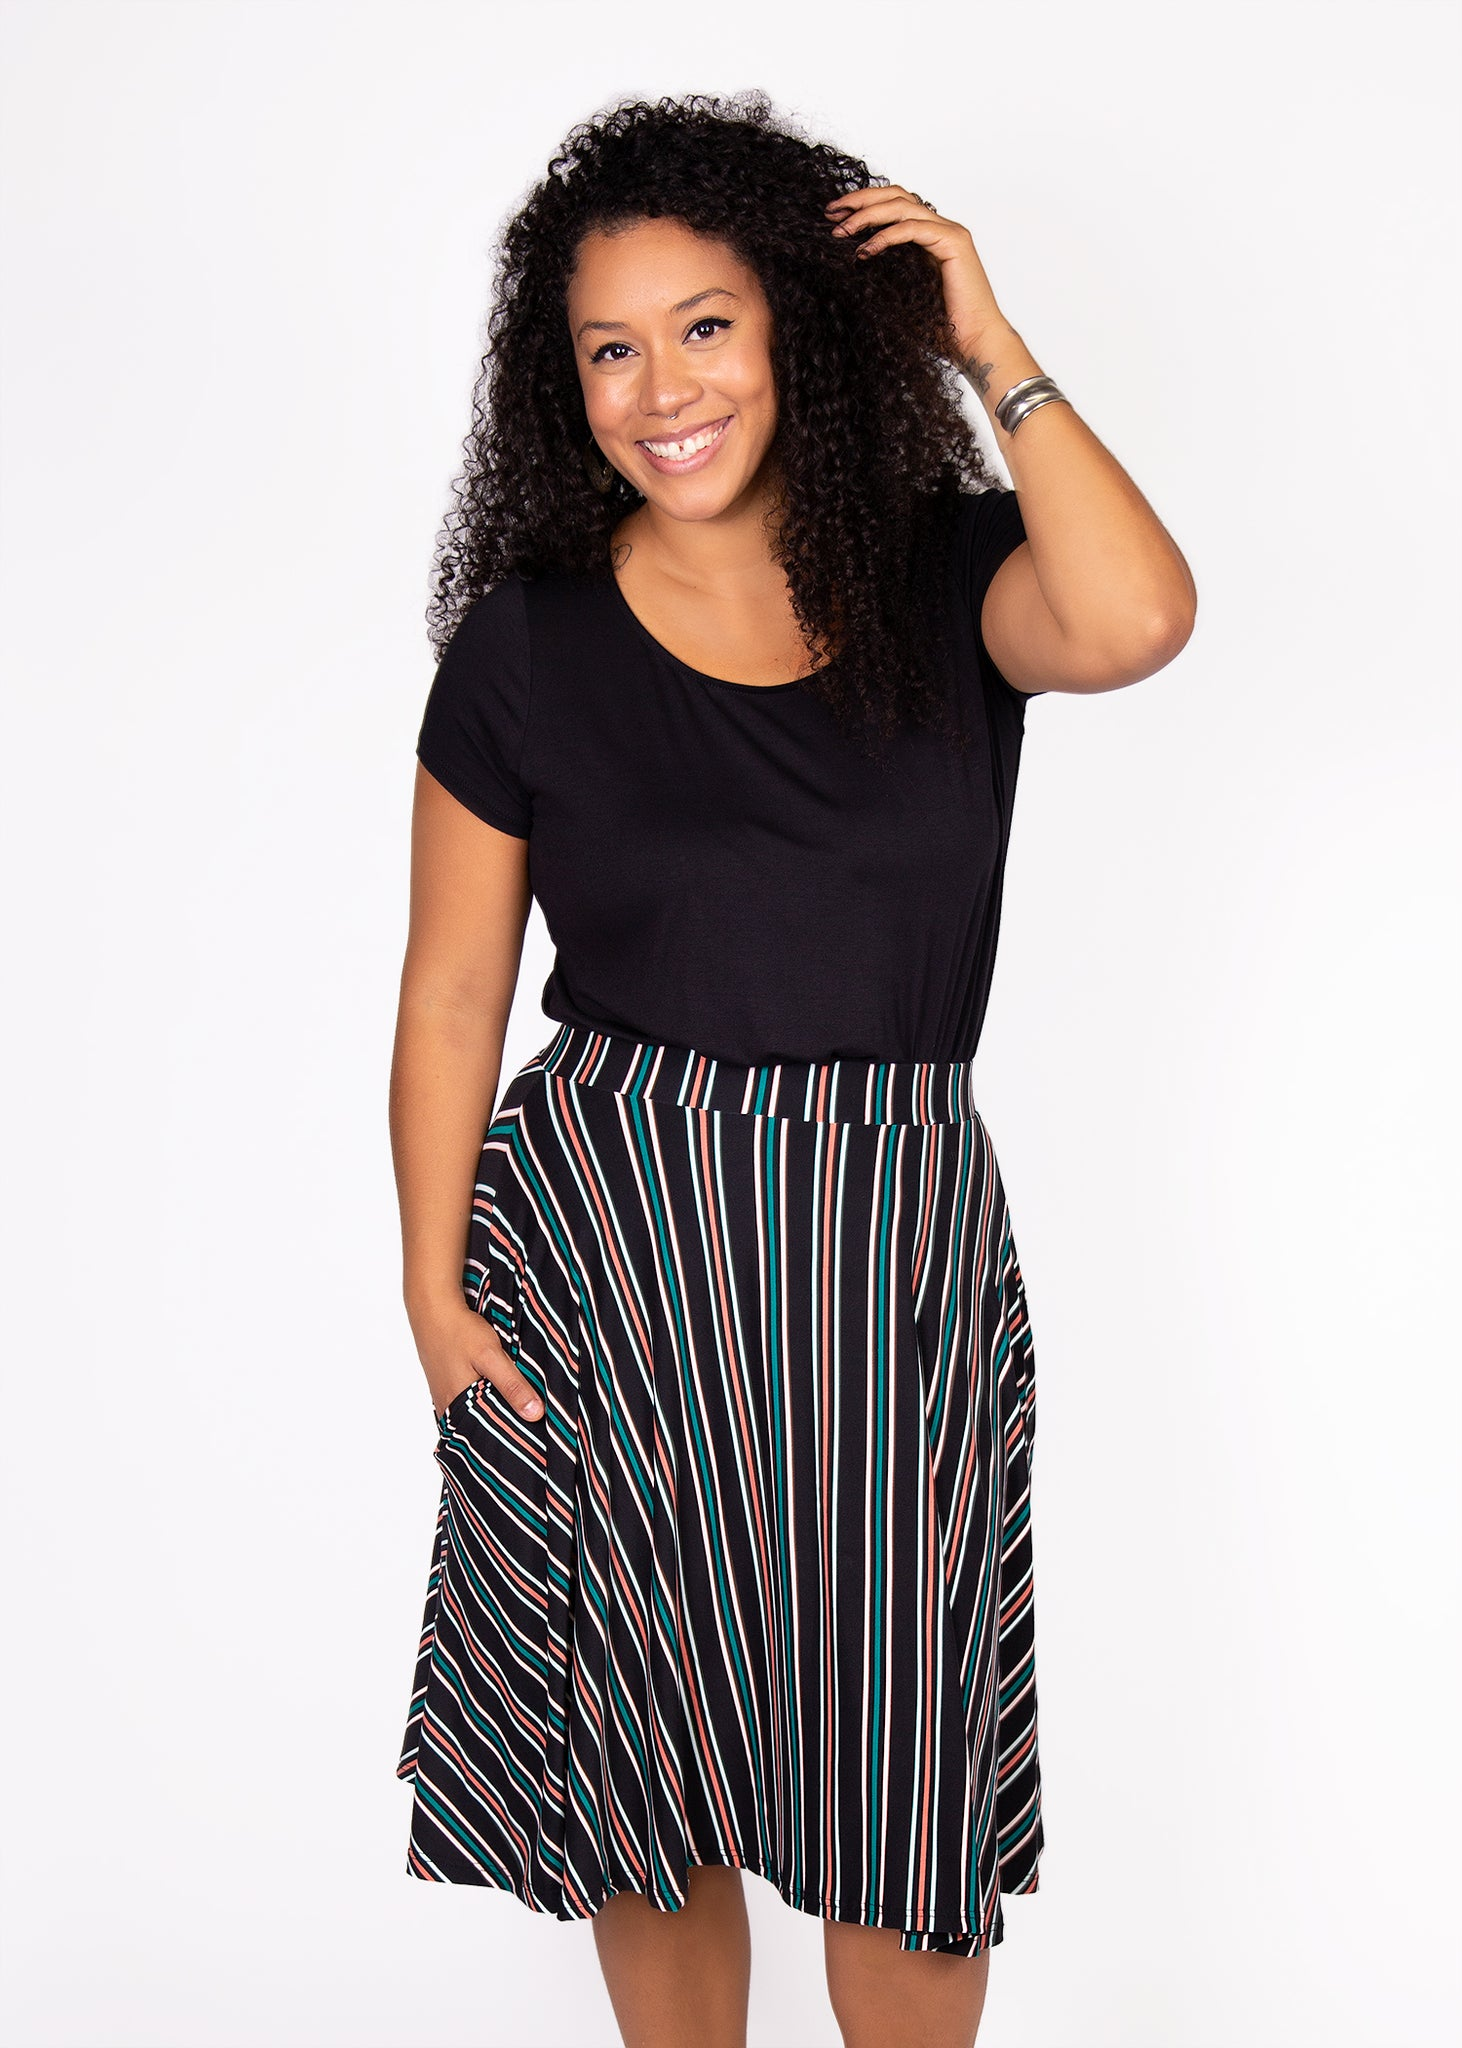 comfortable-chaos-boutique - Bloom Skirt - Black/Pink/Teal Stripe - Skirt